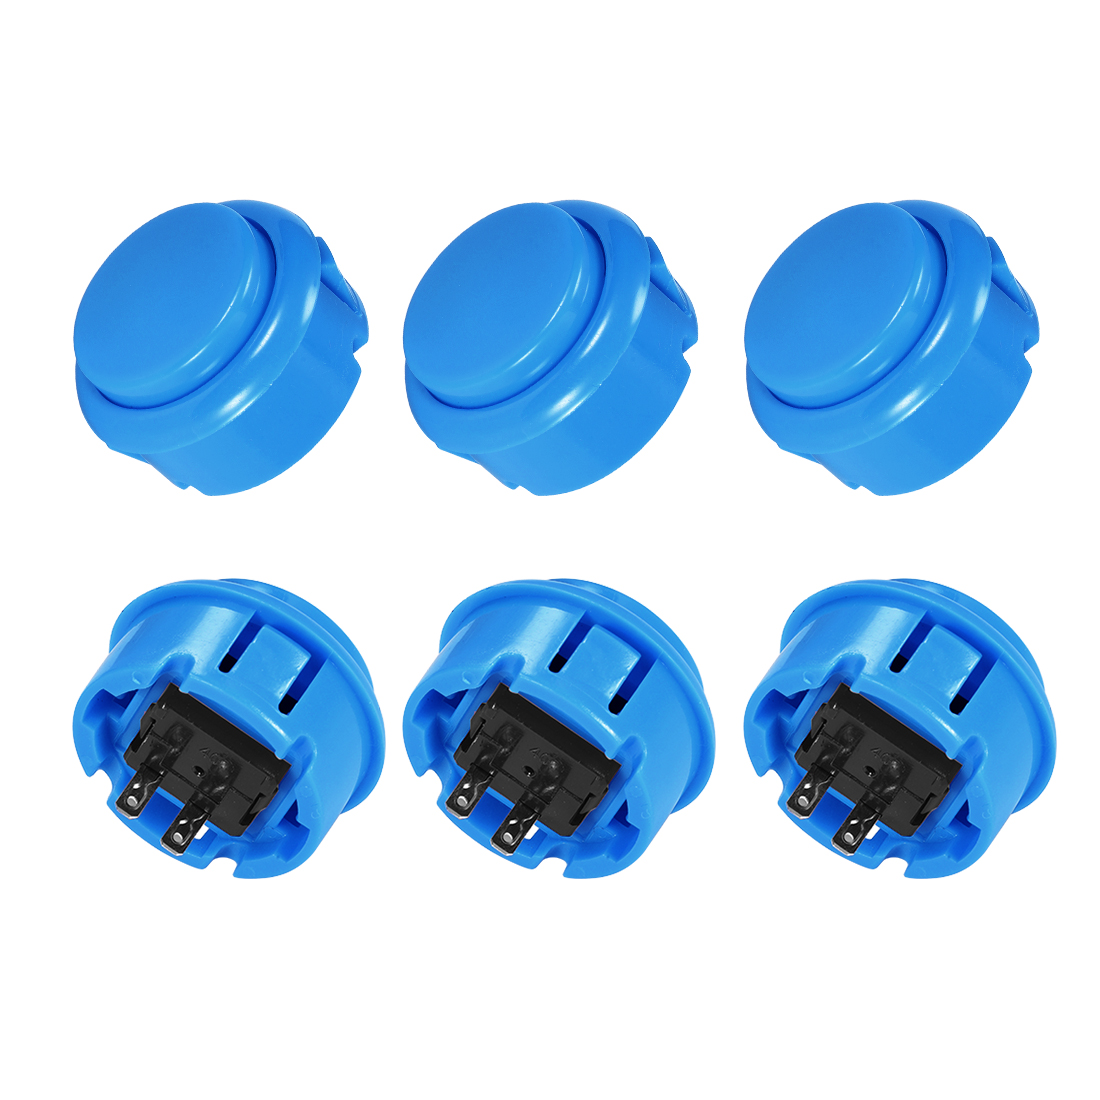 30mm Mounting Momentary Game Push Button Round for Video Games Blue 6pcs